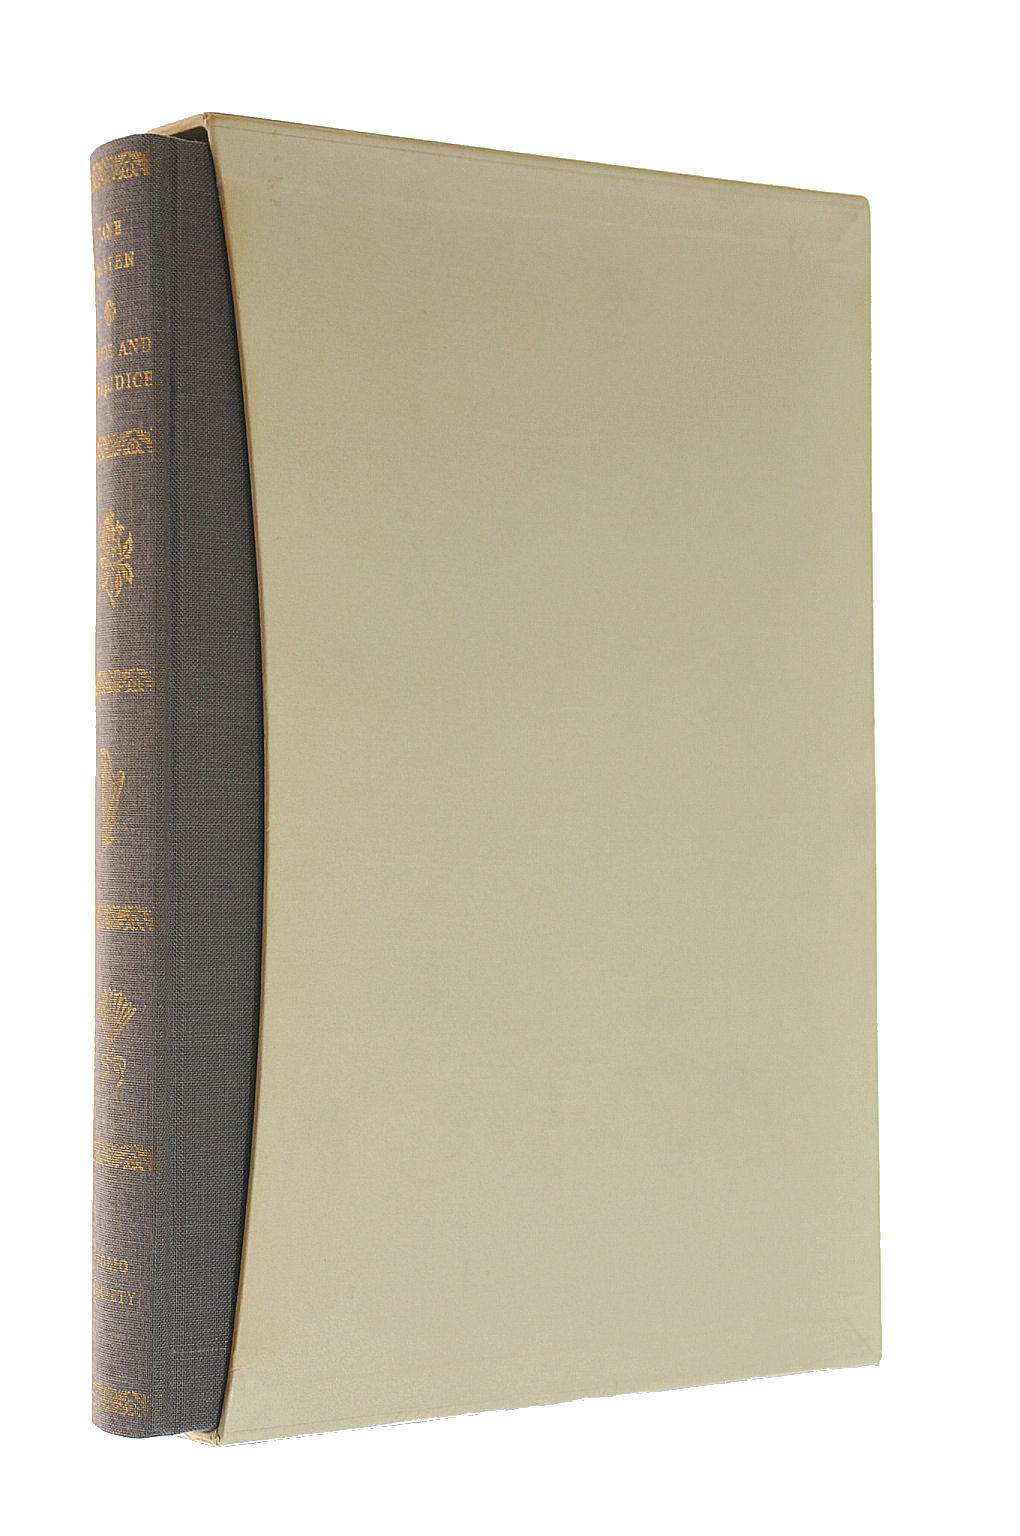 Image for Pride & Prejudice: Written by Jane Austen, 1975 Edition, (reprint) Publisher: Folio Society [Hardcover]